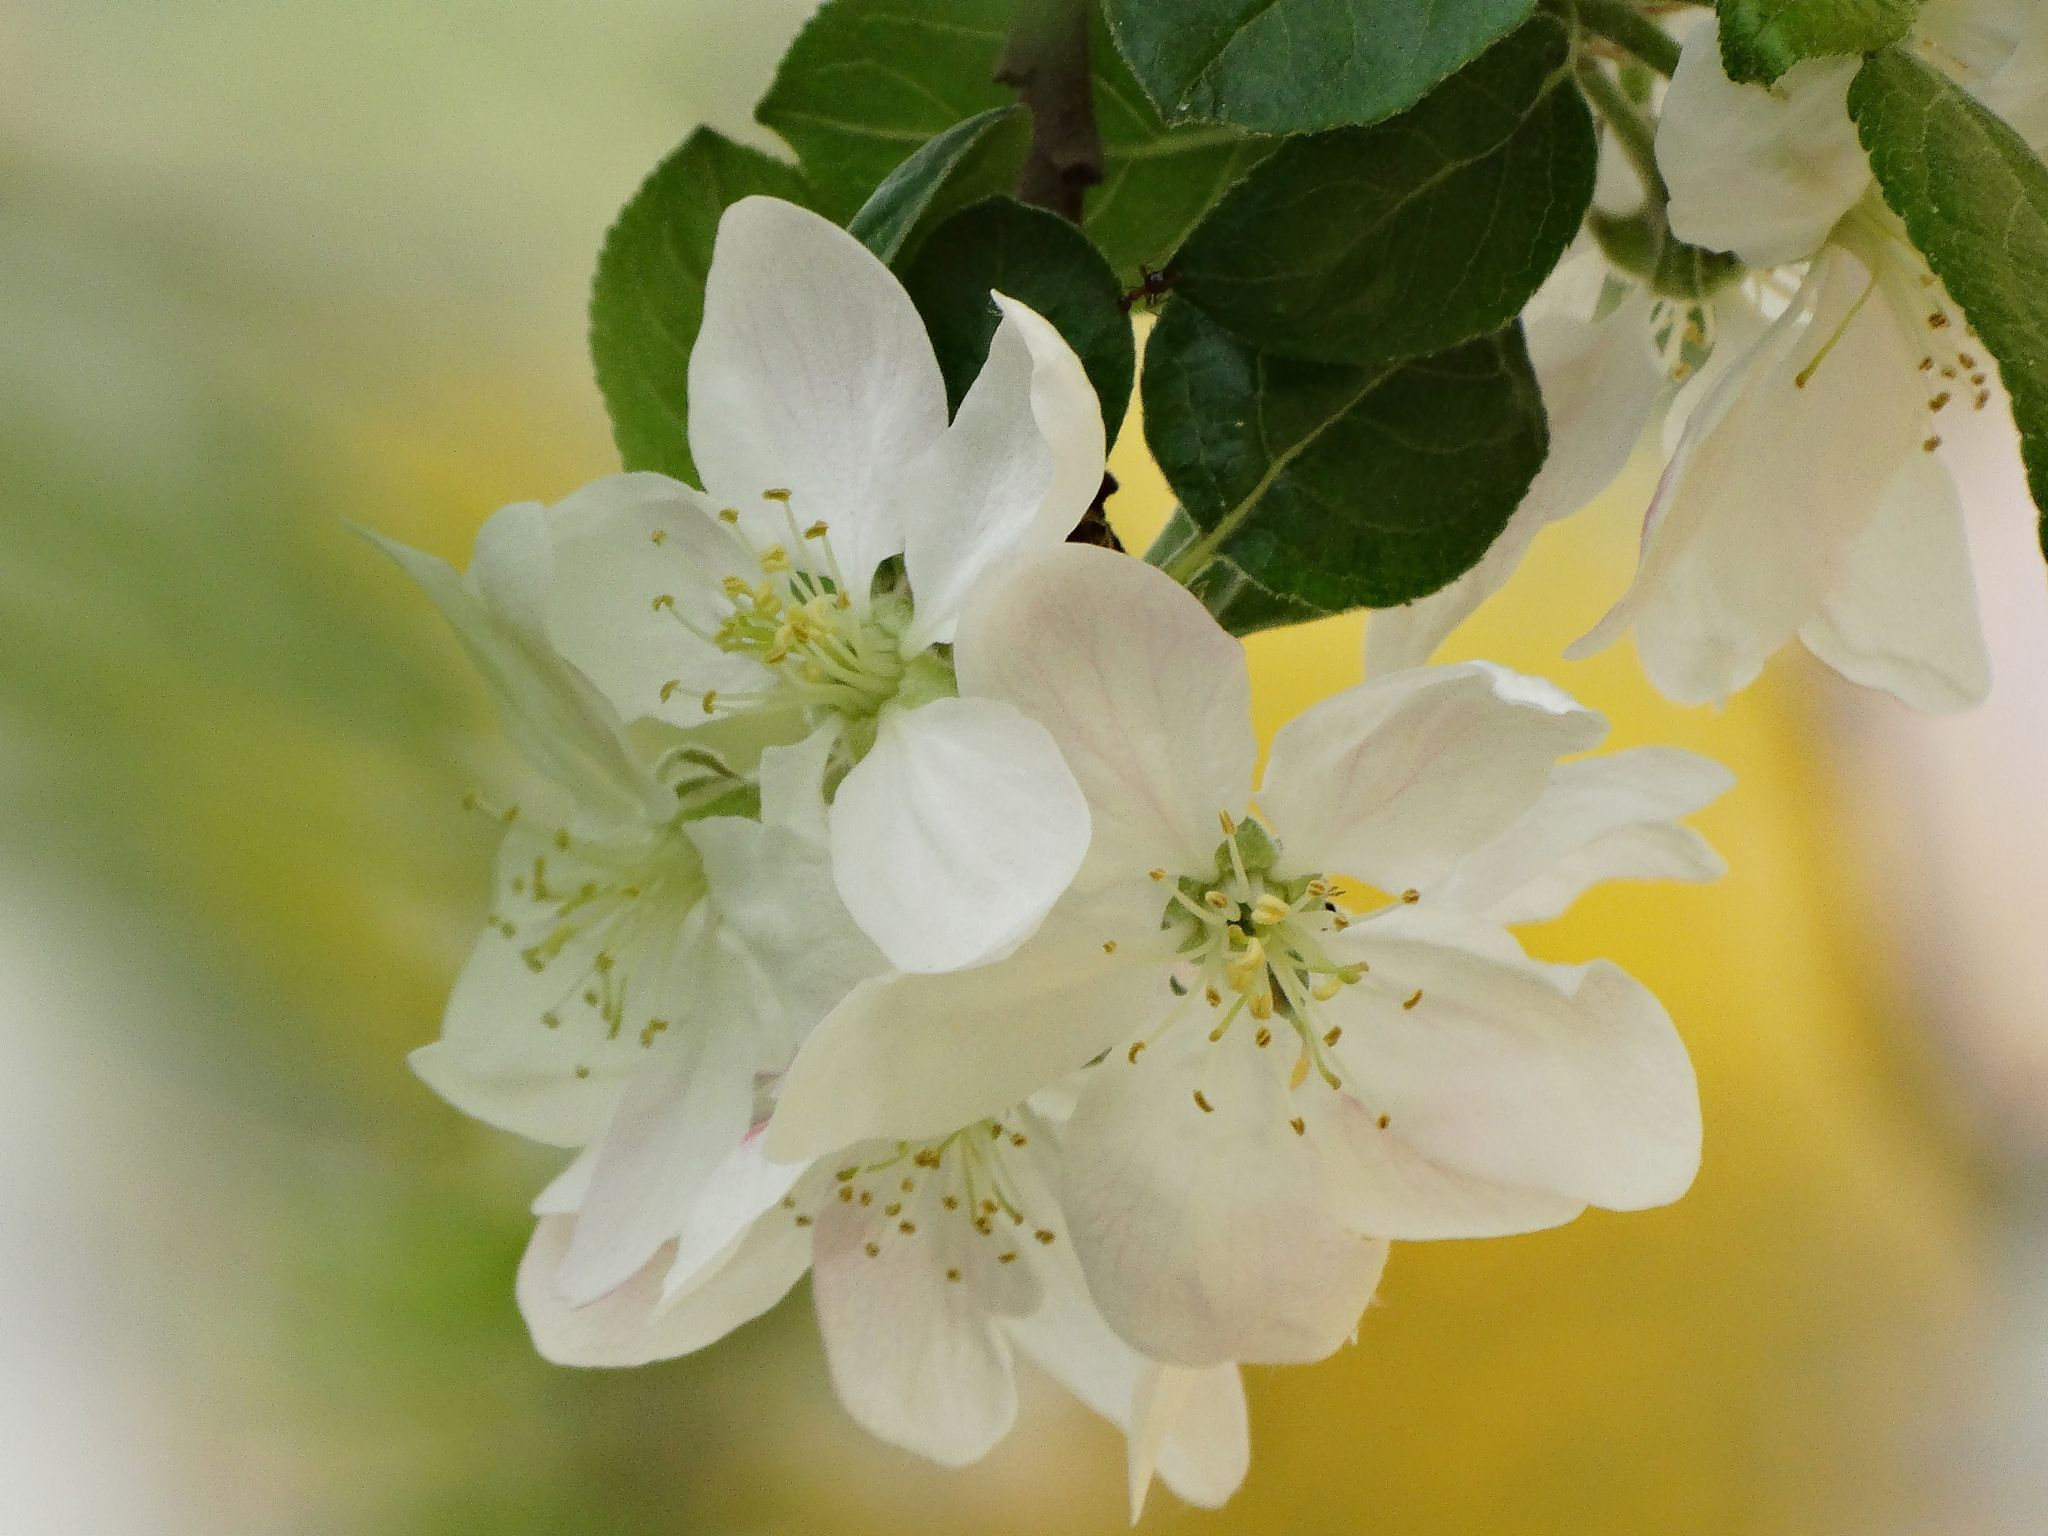 Spring Blossoms by dannety on 500px